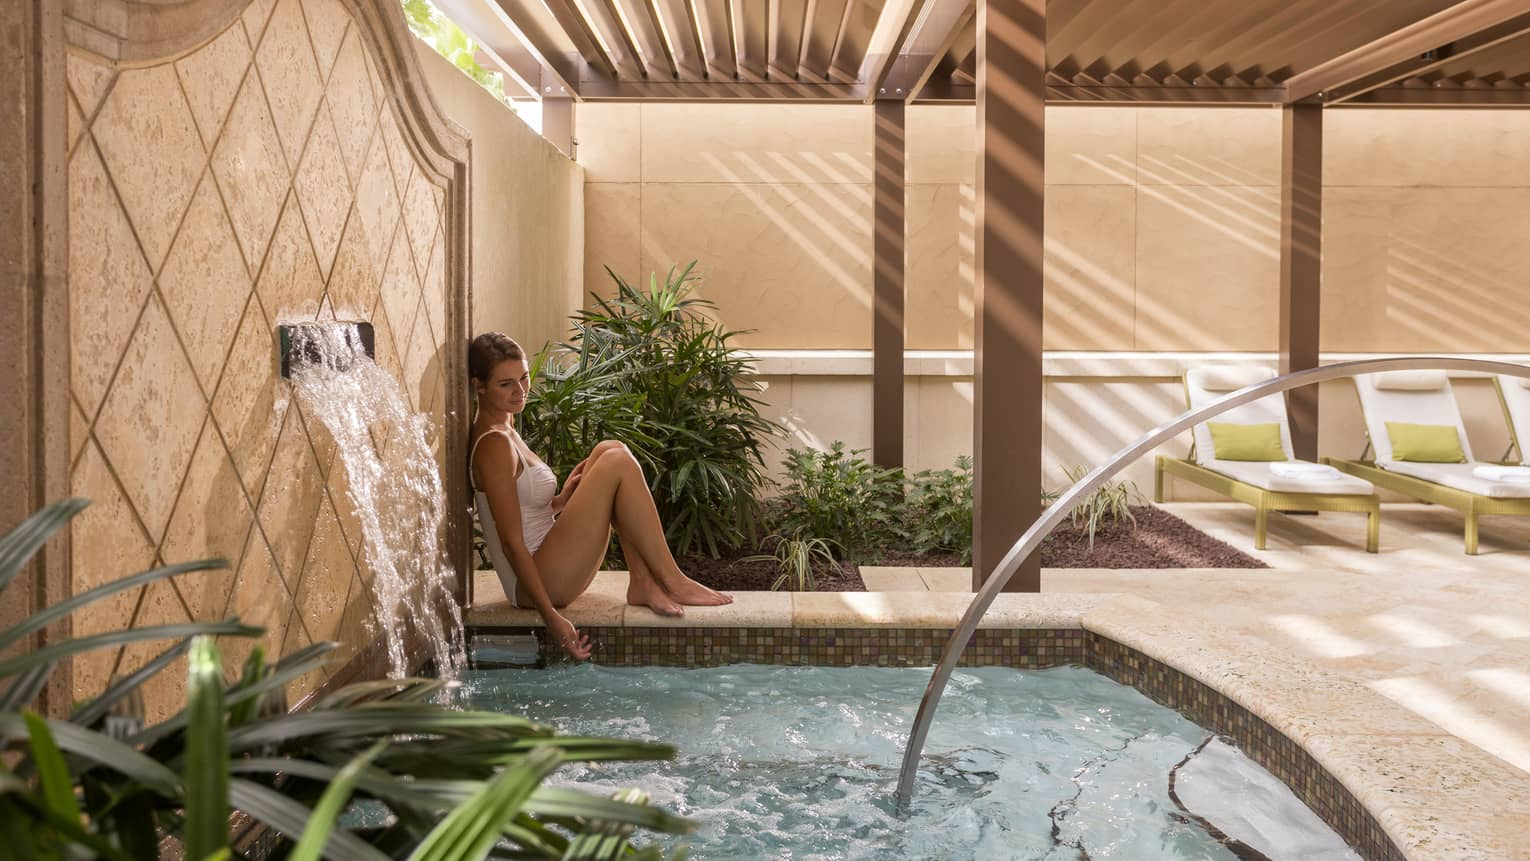 Woman wearing swimsuit leans against tile wall with fountain by small spa pool